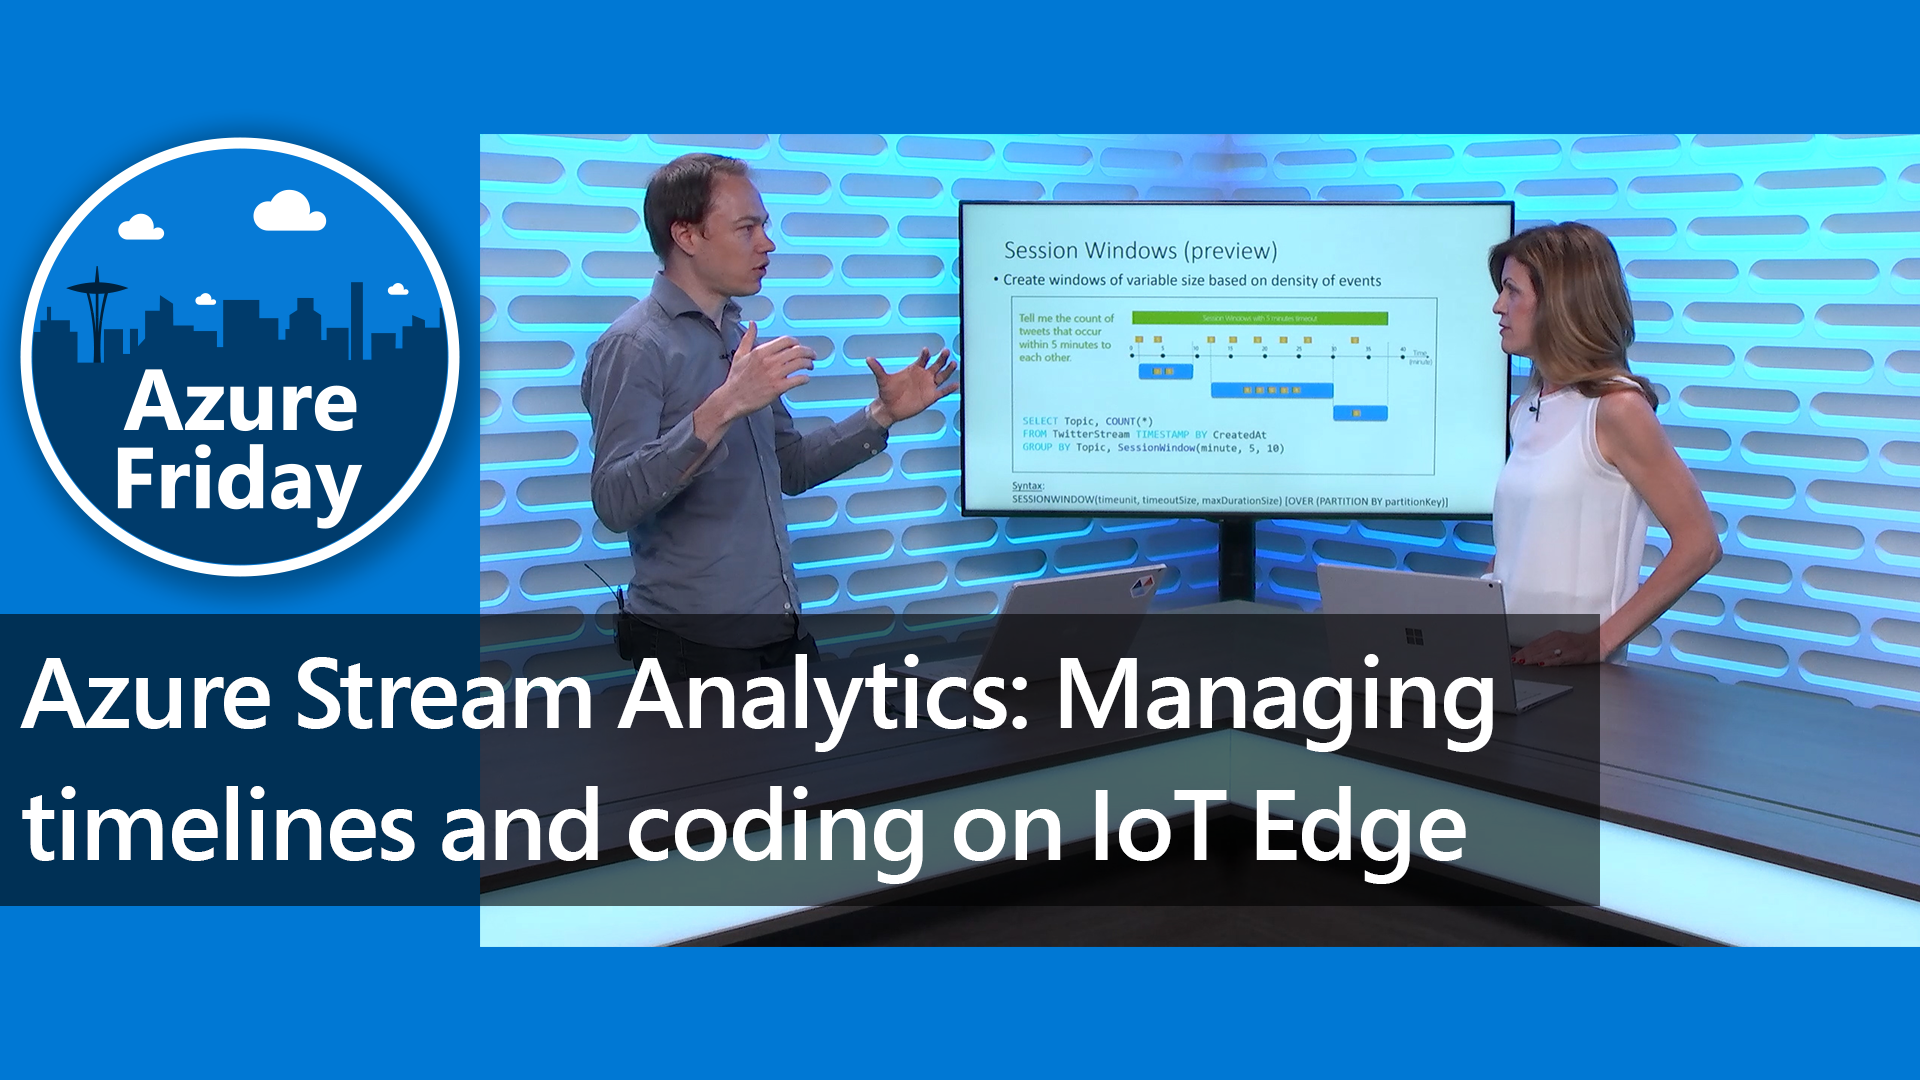 Azure Stream Analytics: Managing timelines and coding on IoT Edge